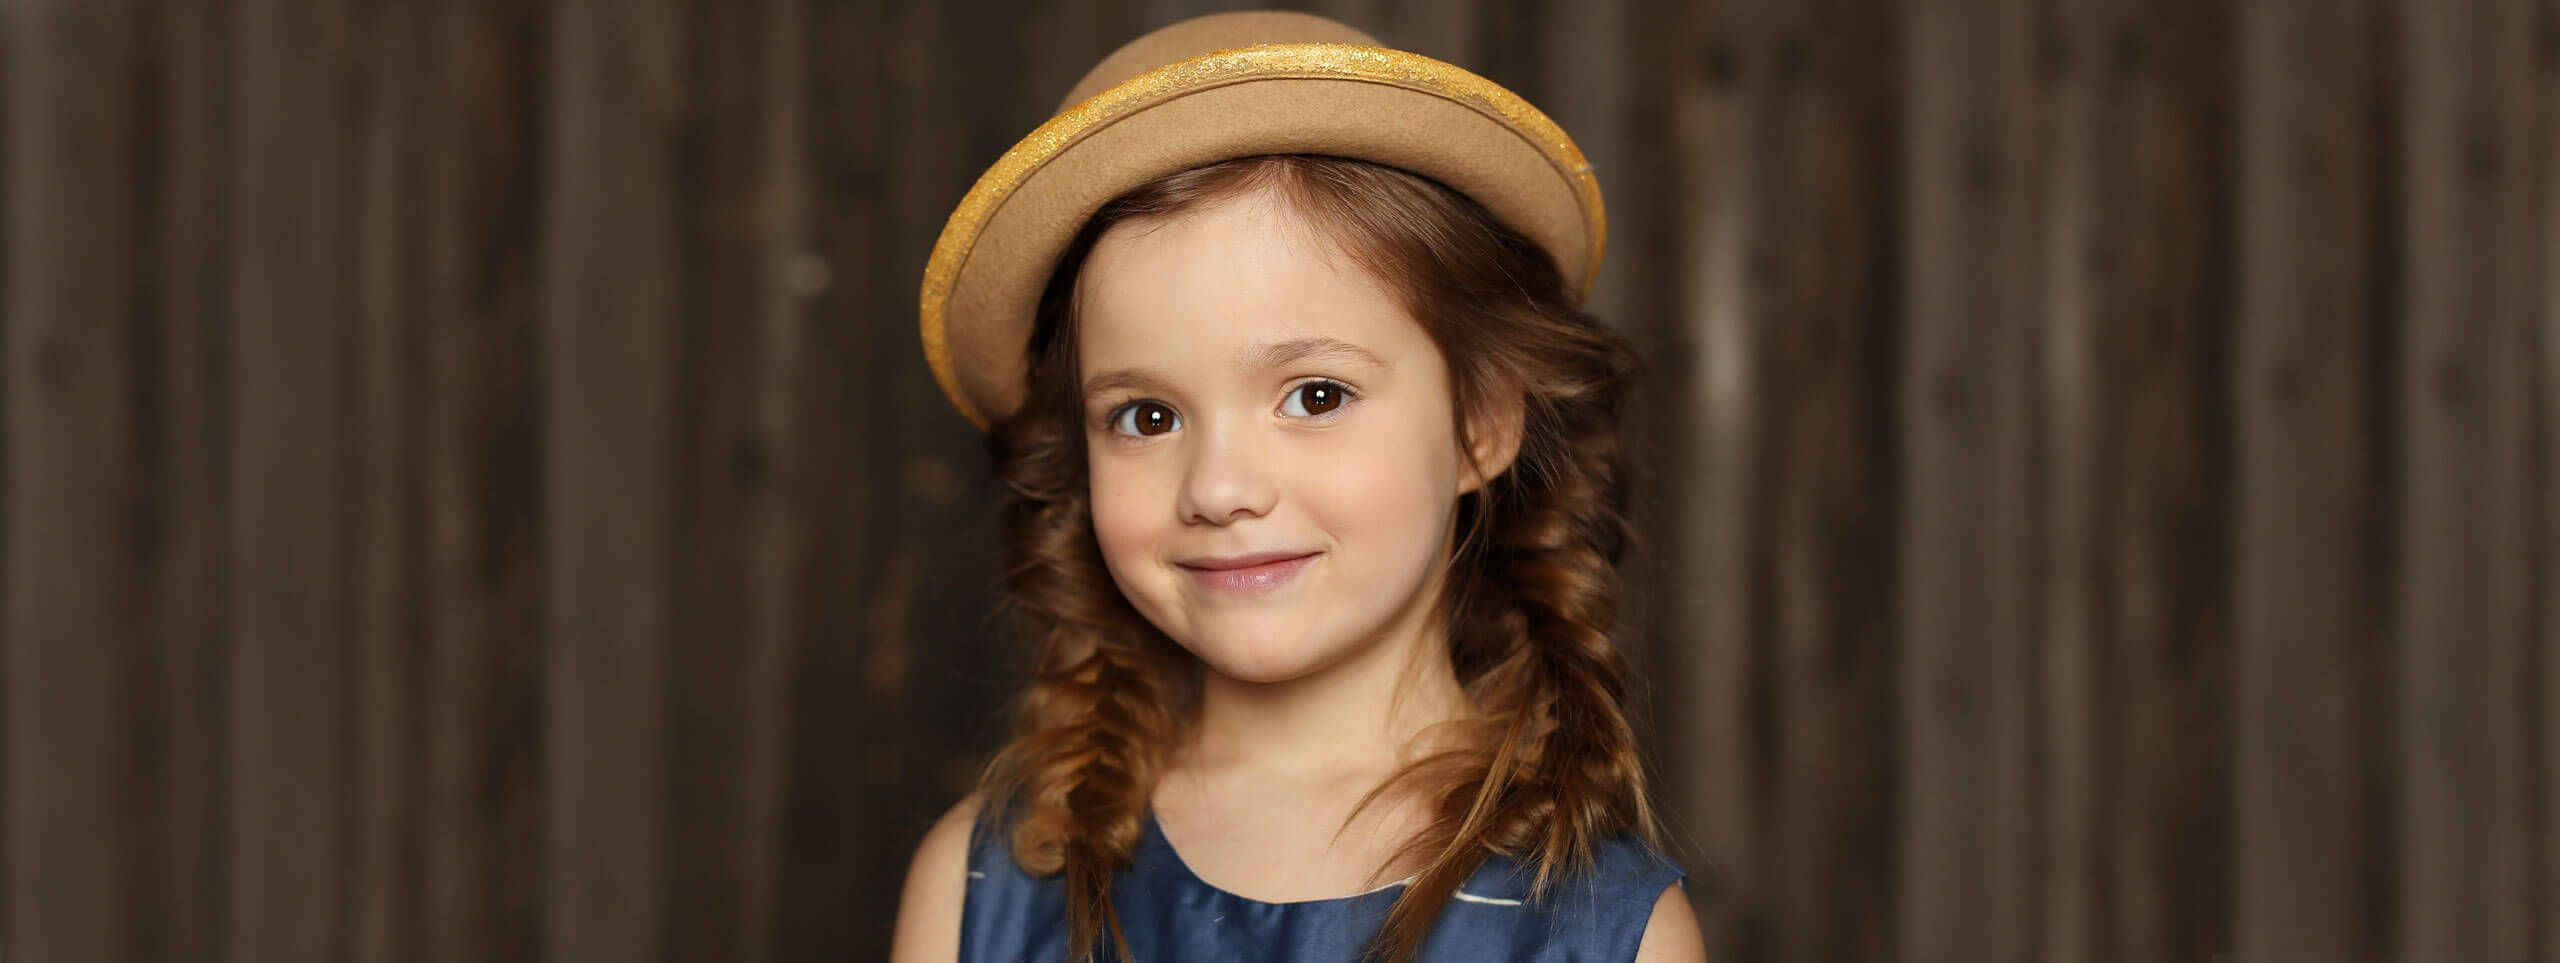 Little girl with curly brown hairstyle and hat, a hairstyle trend for kids